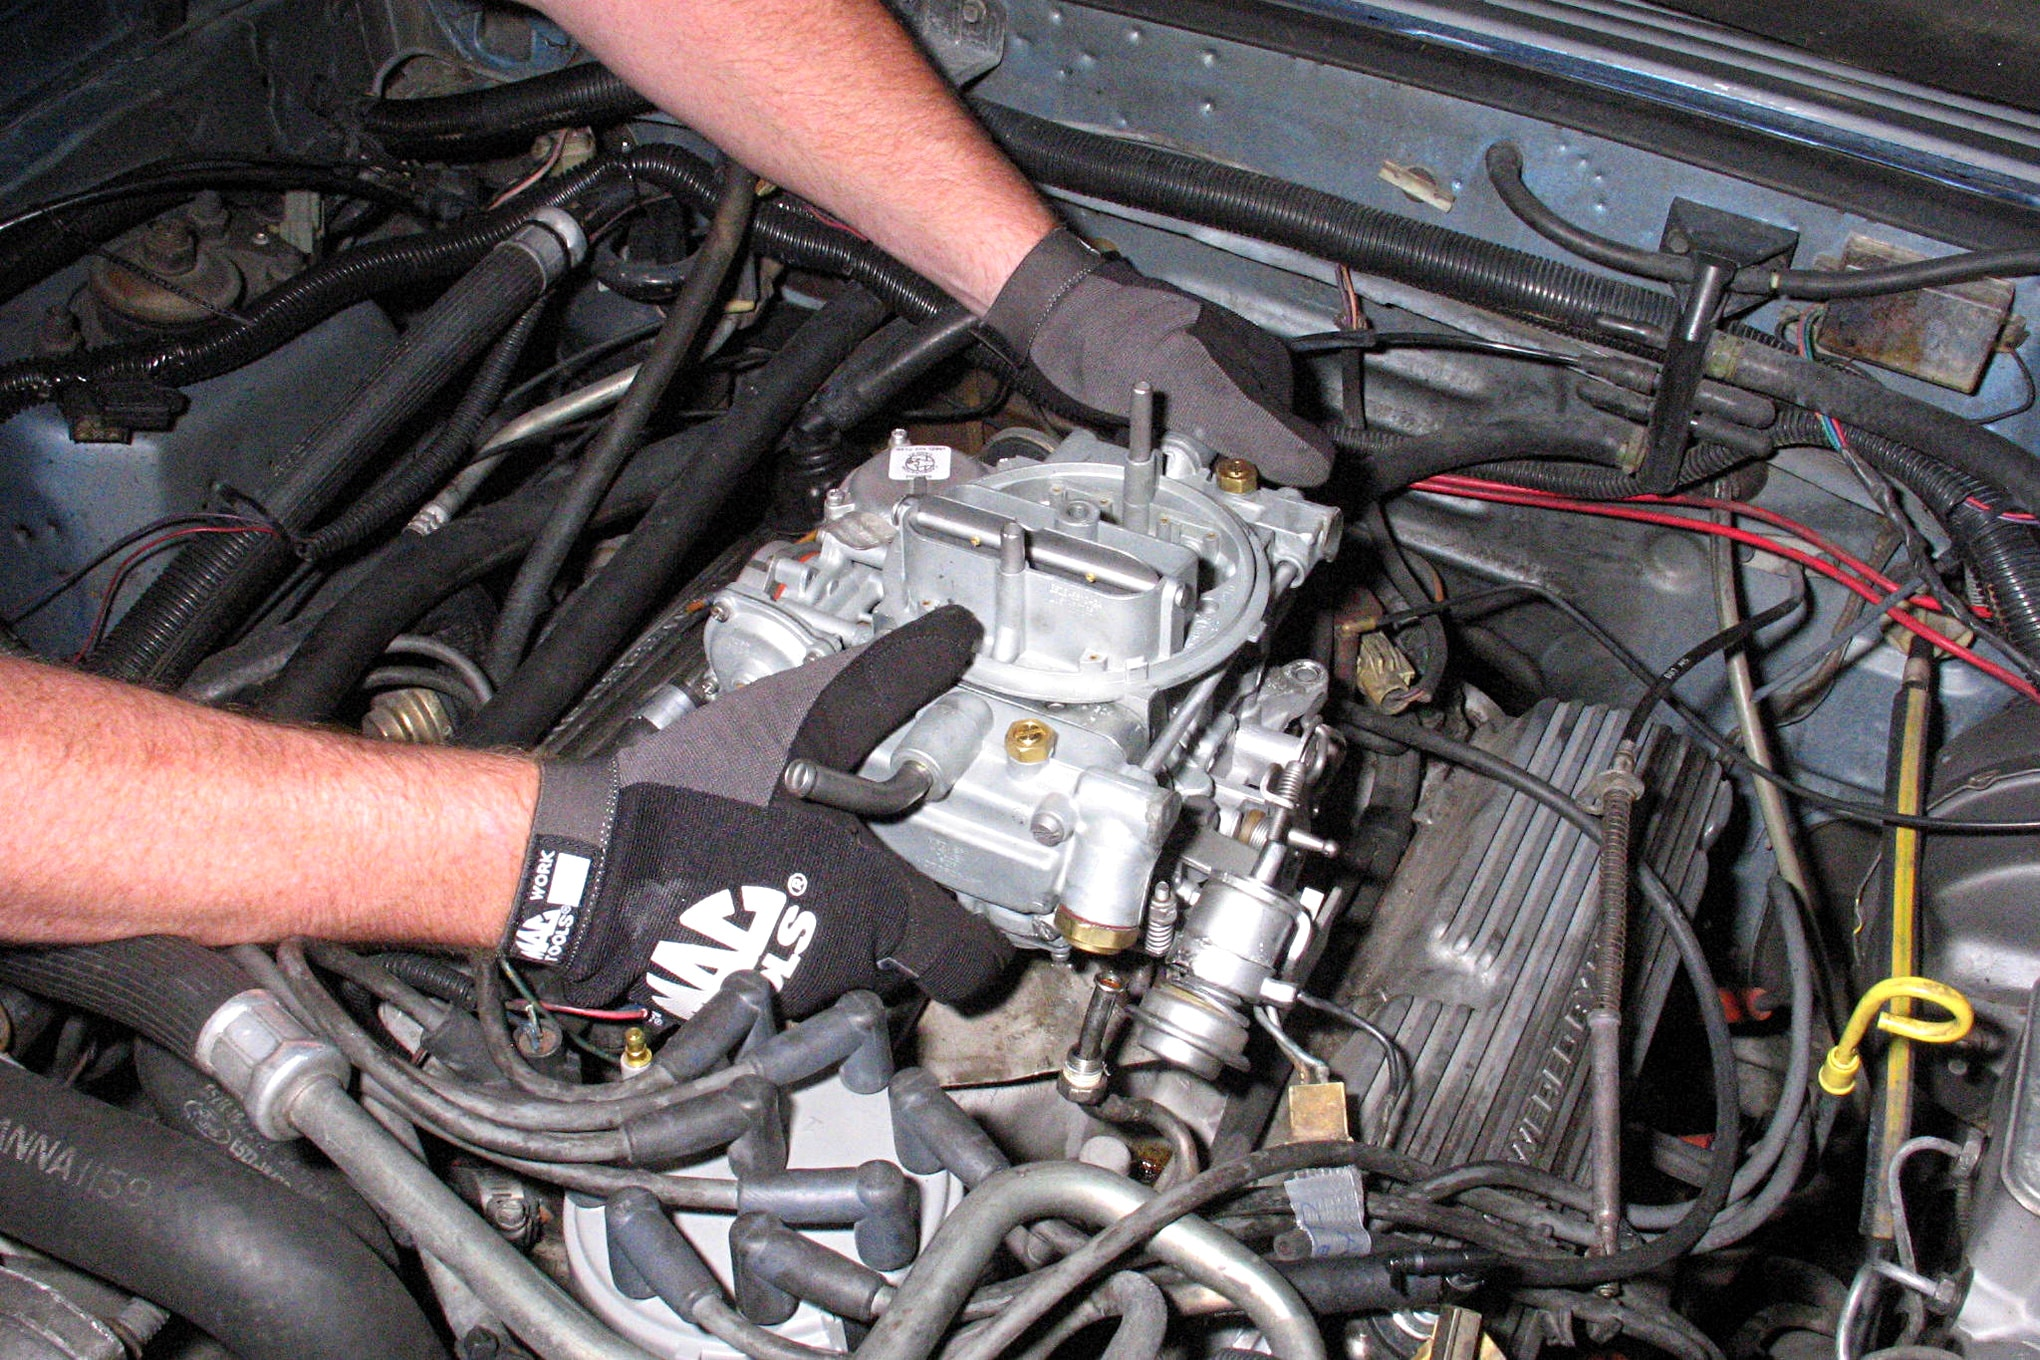 hight resolution of for 3 years the 5 0l high output was fitted with the holley 4180c 1984 ford mustang 50 carbureted wiring harness